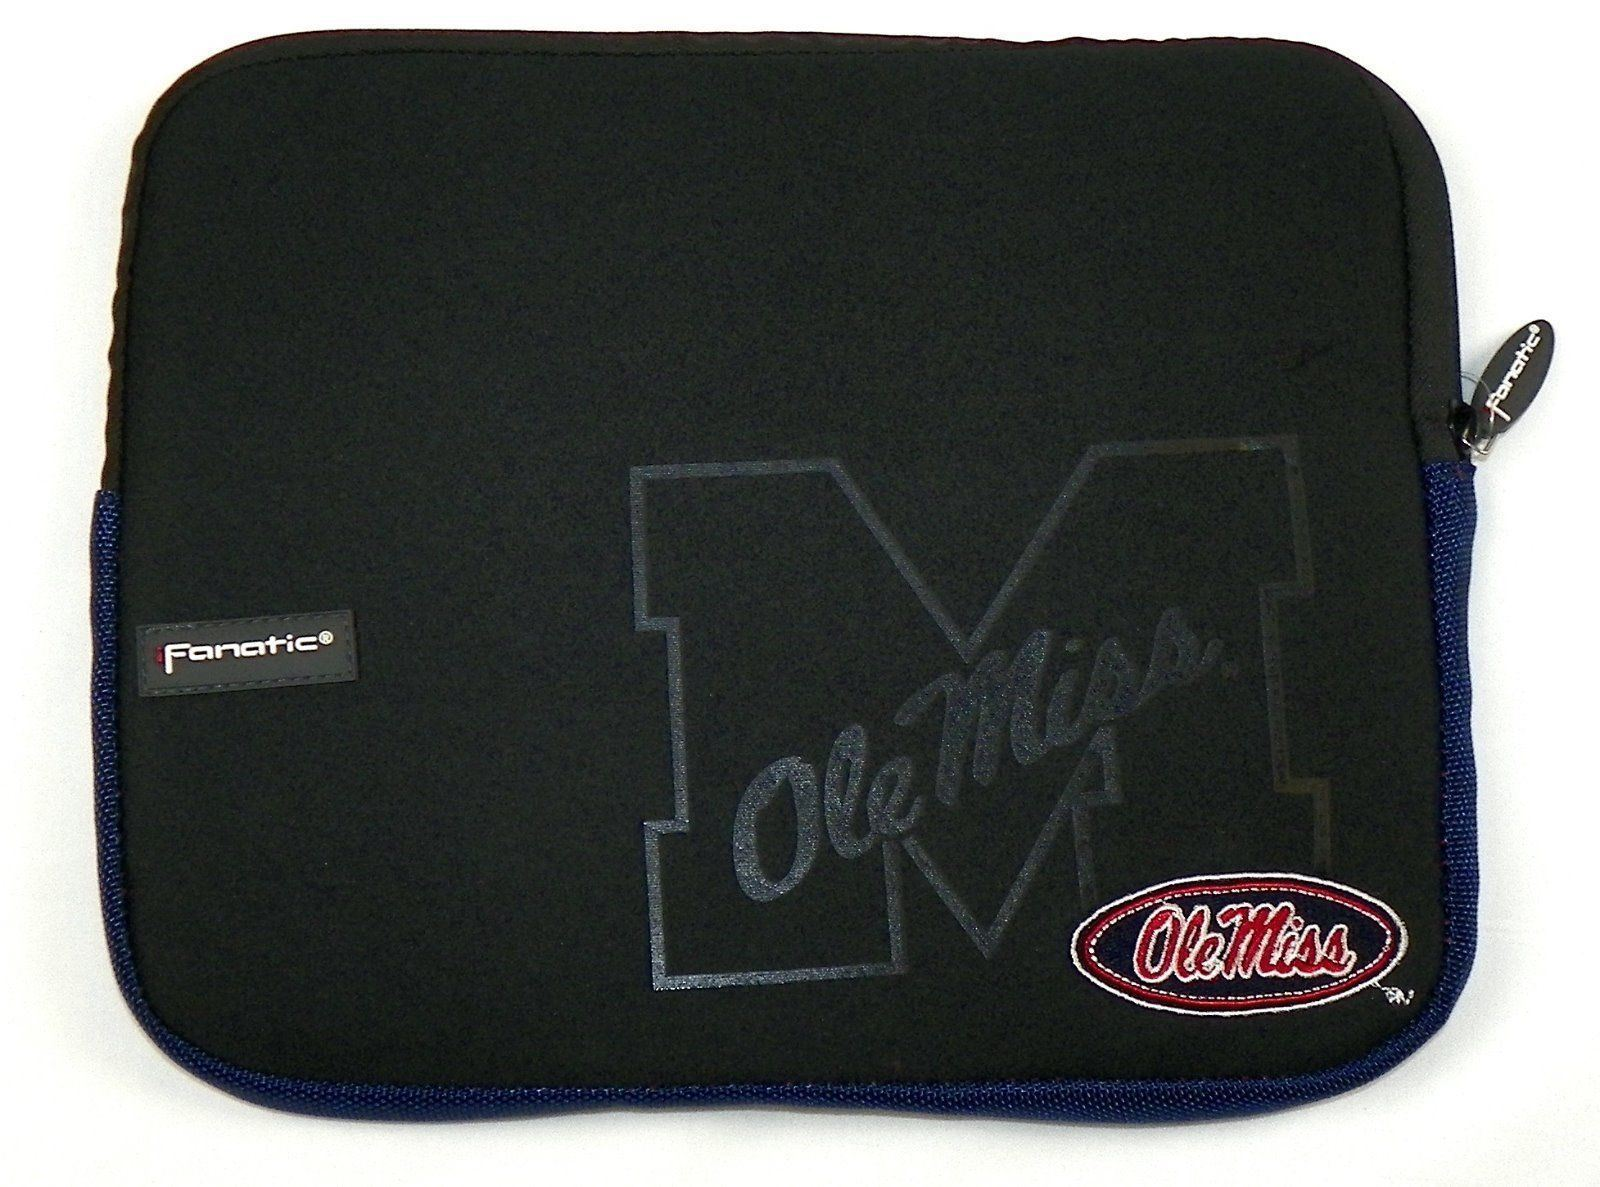 "Ole Miss Rebels Tablet Computer Sleeve Case Soft Top Bag 11"" x 8.5"" Universal"